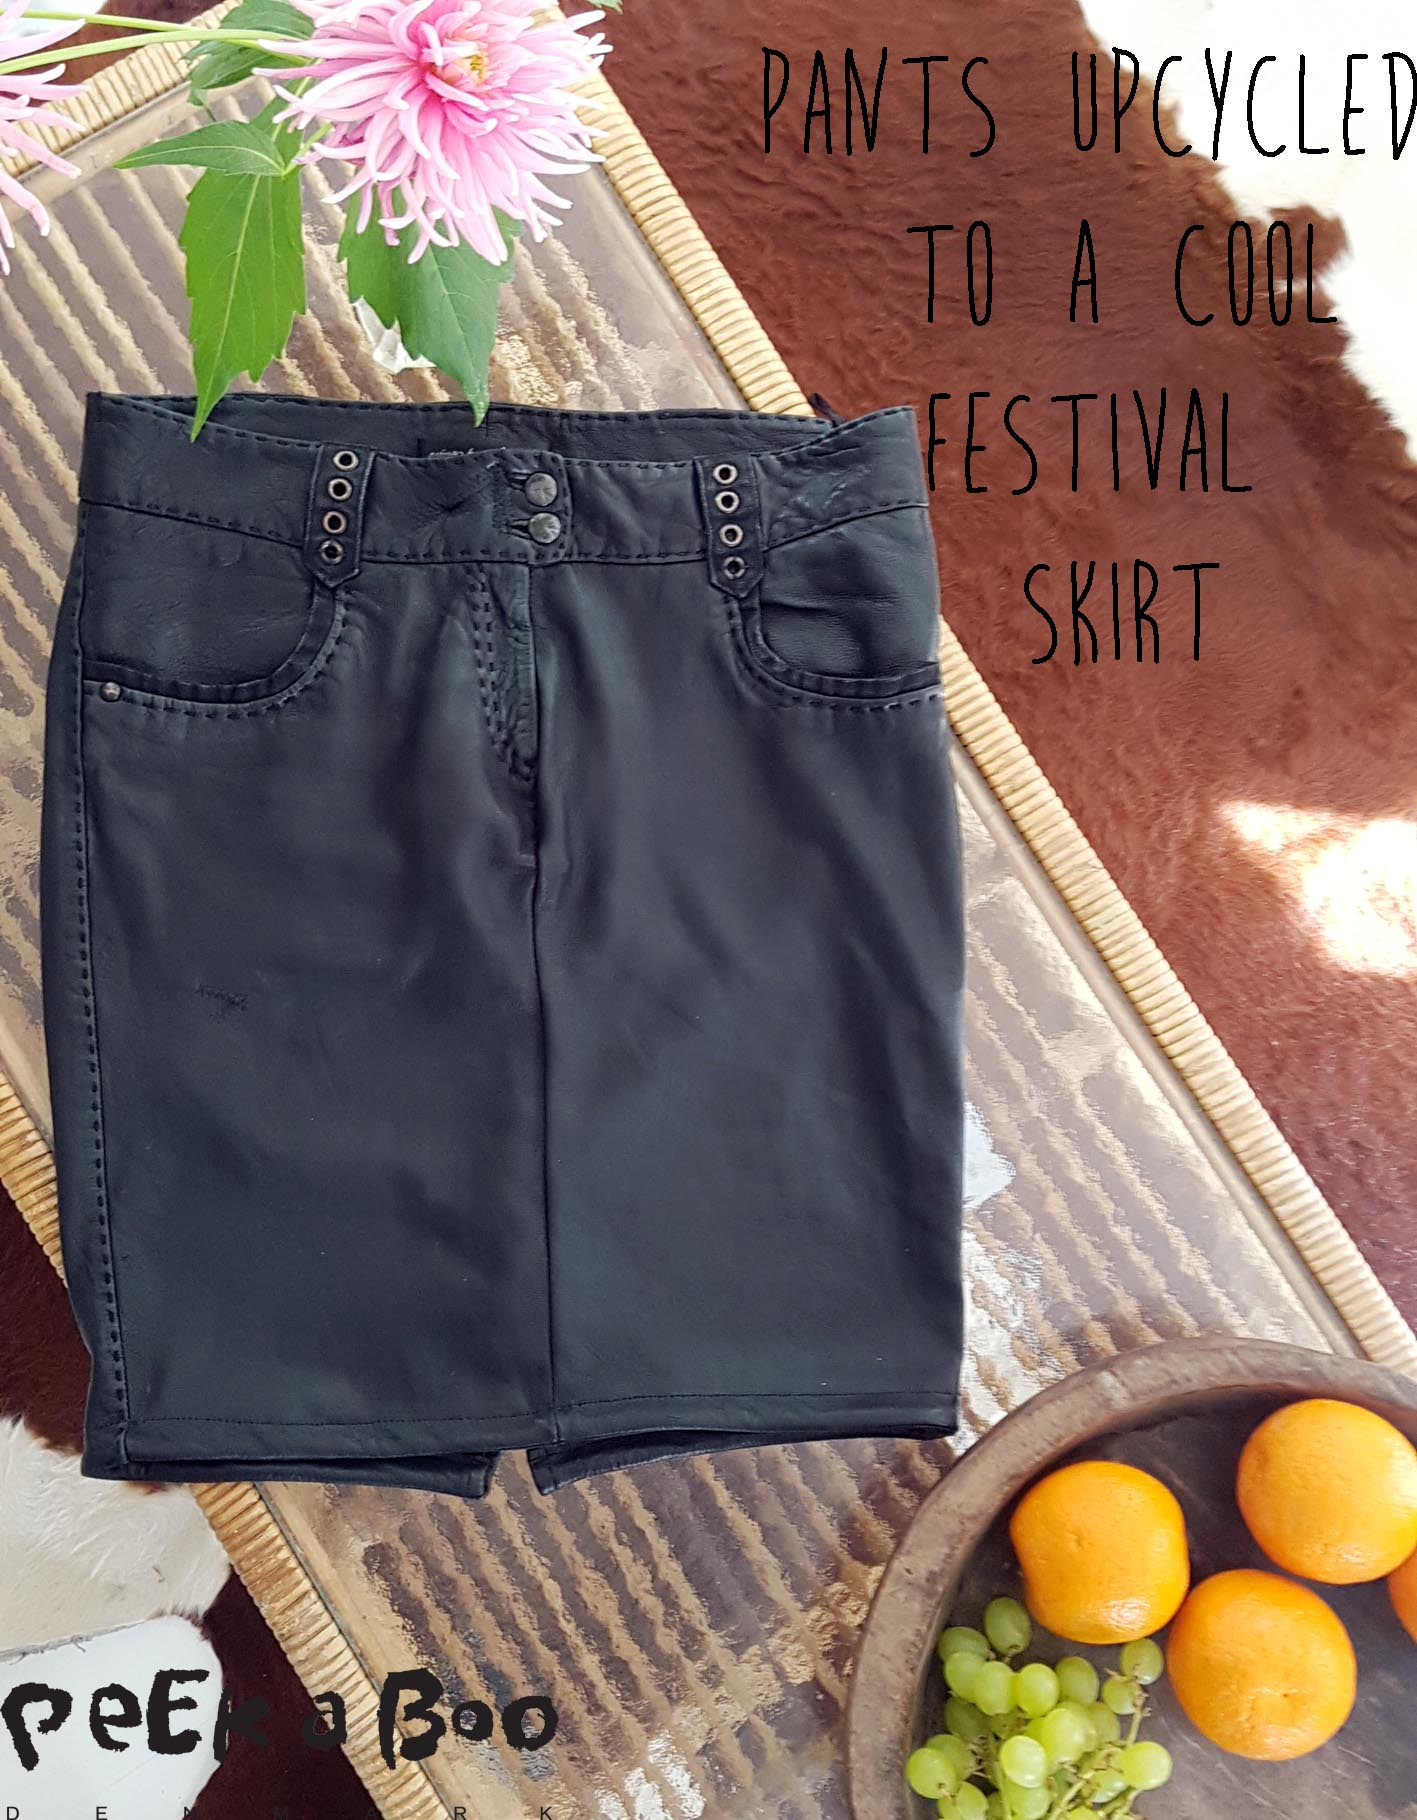 upcycled leather pants, now a cool leather skirt...